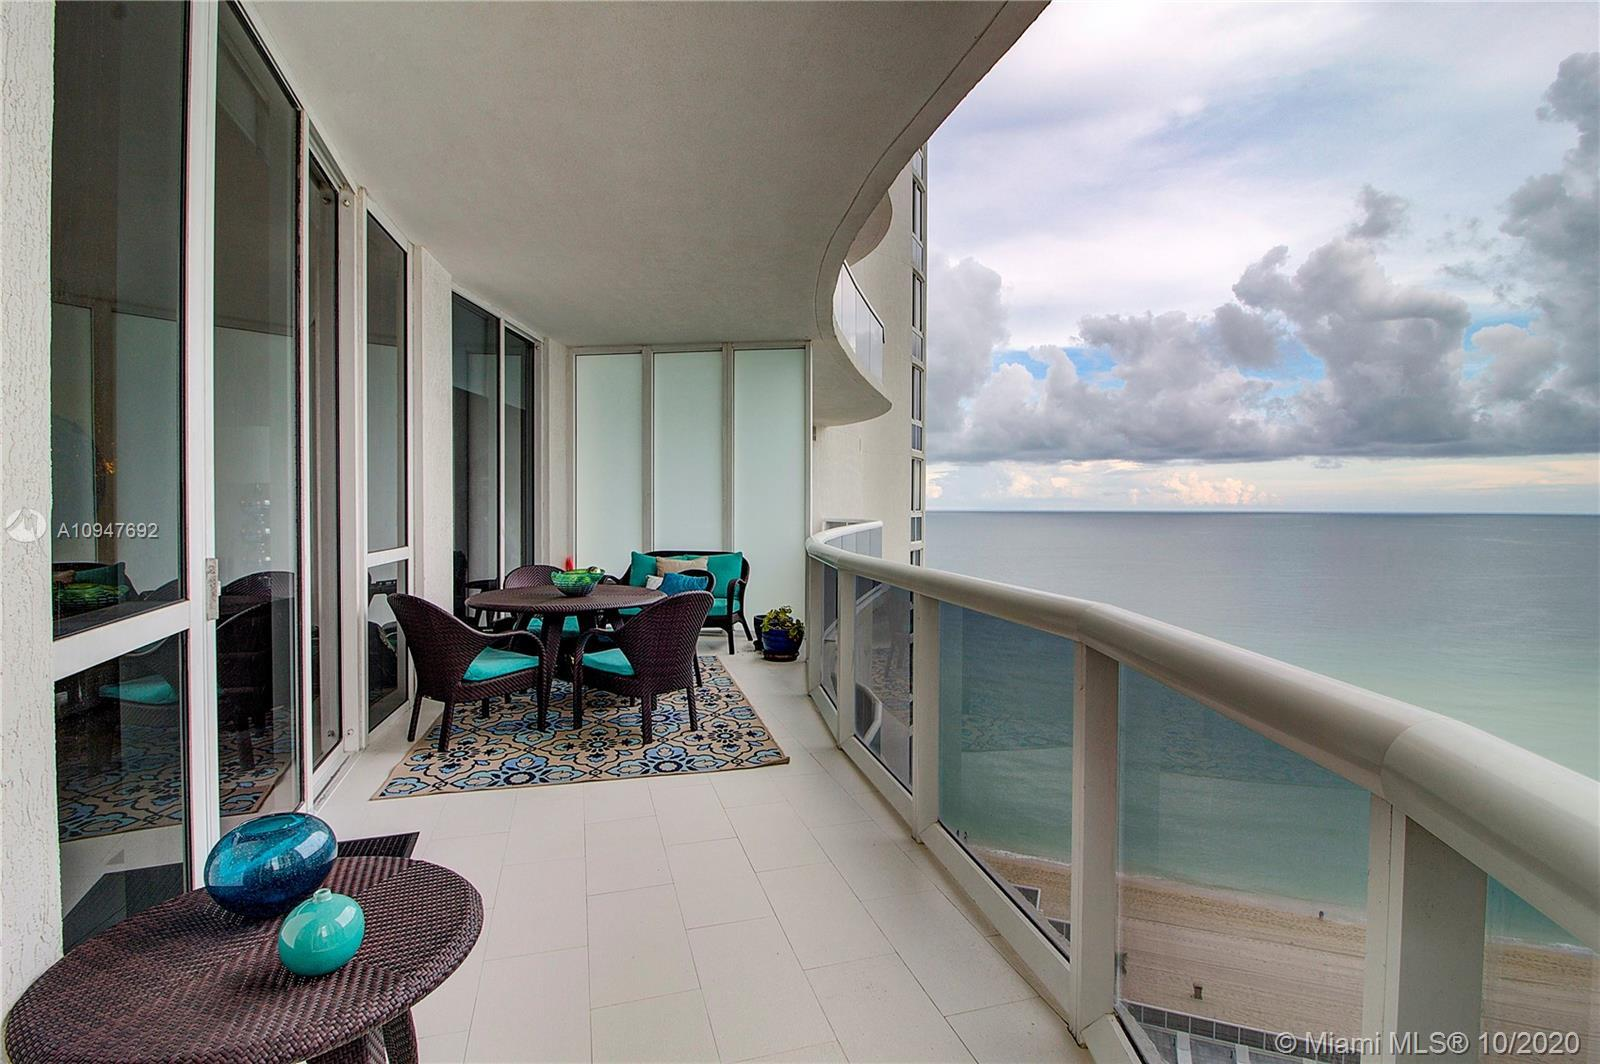 Beautiful 3 Bedrooms/ 3 Bathrooms Ocean Front Unit in Trump Tower II Sunny Isle, walking distance to